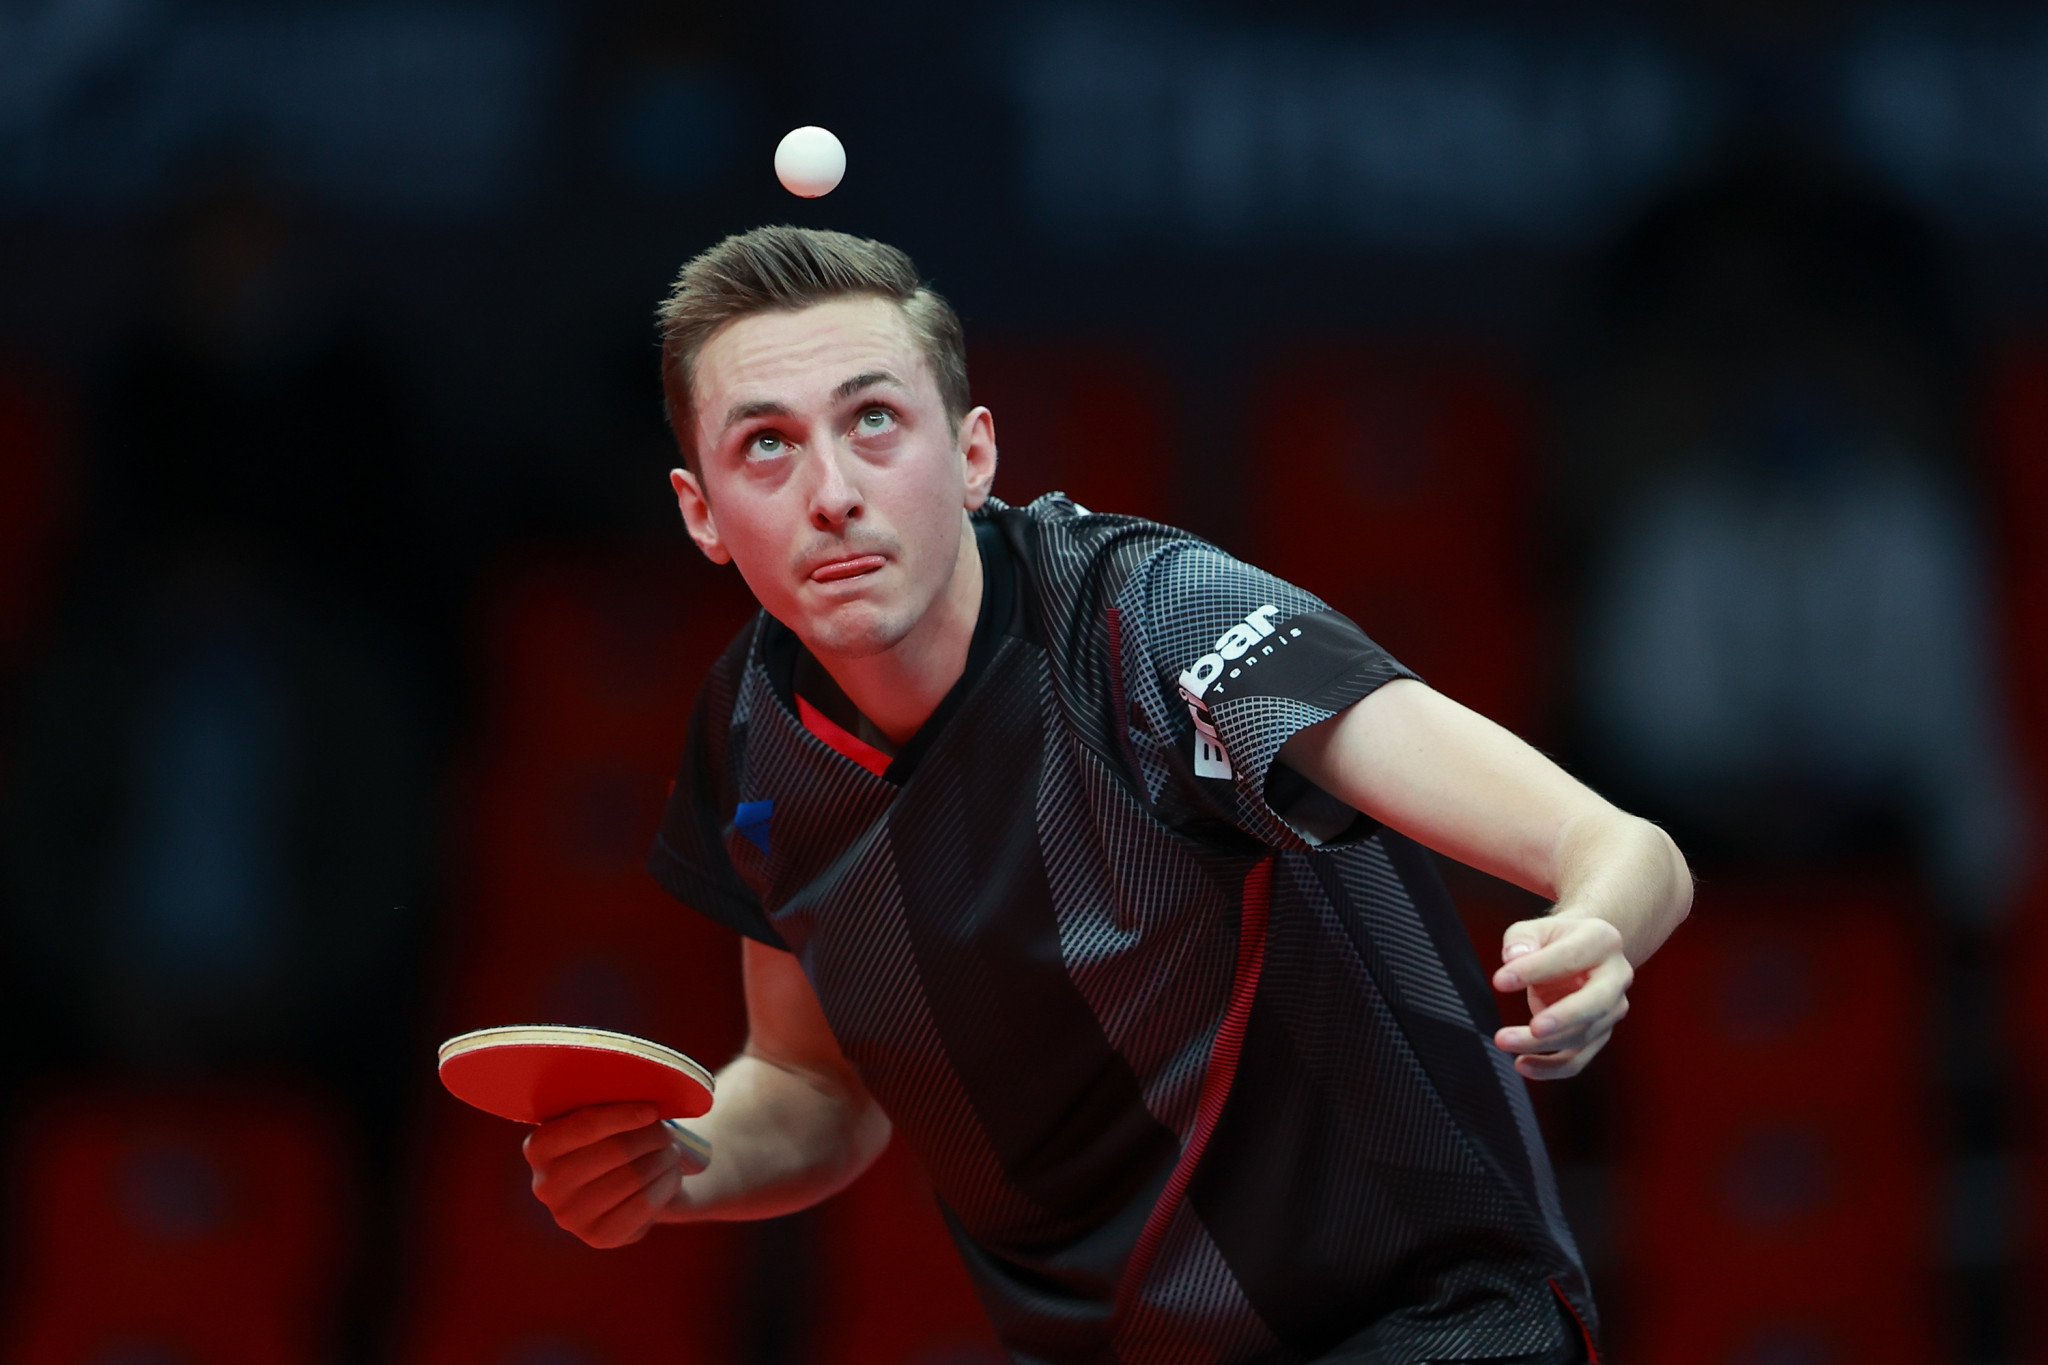 First European World Table Tennis event in Budapest sees top seeds Pitchford and Yang progress on day one